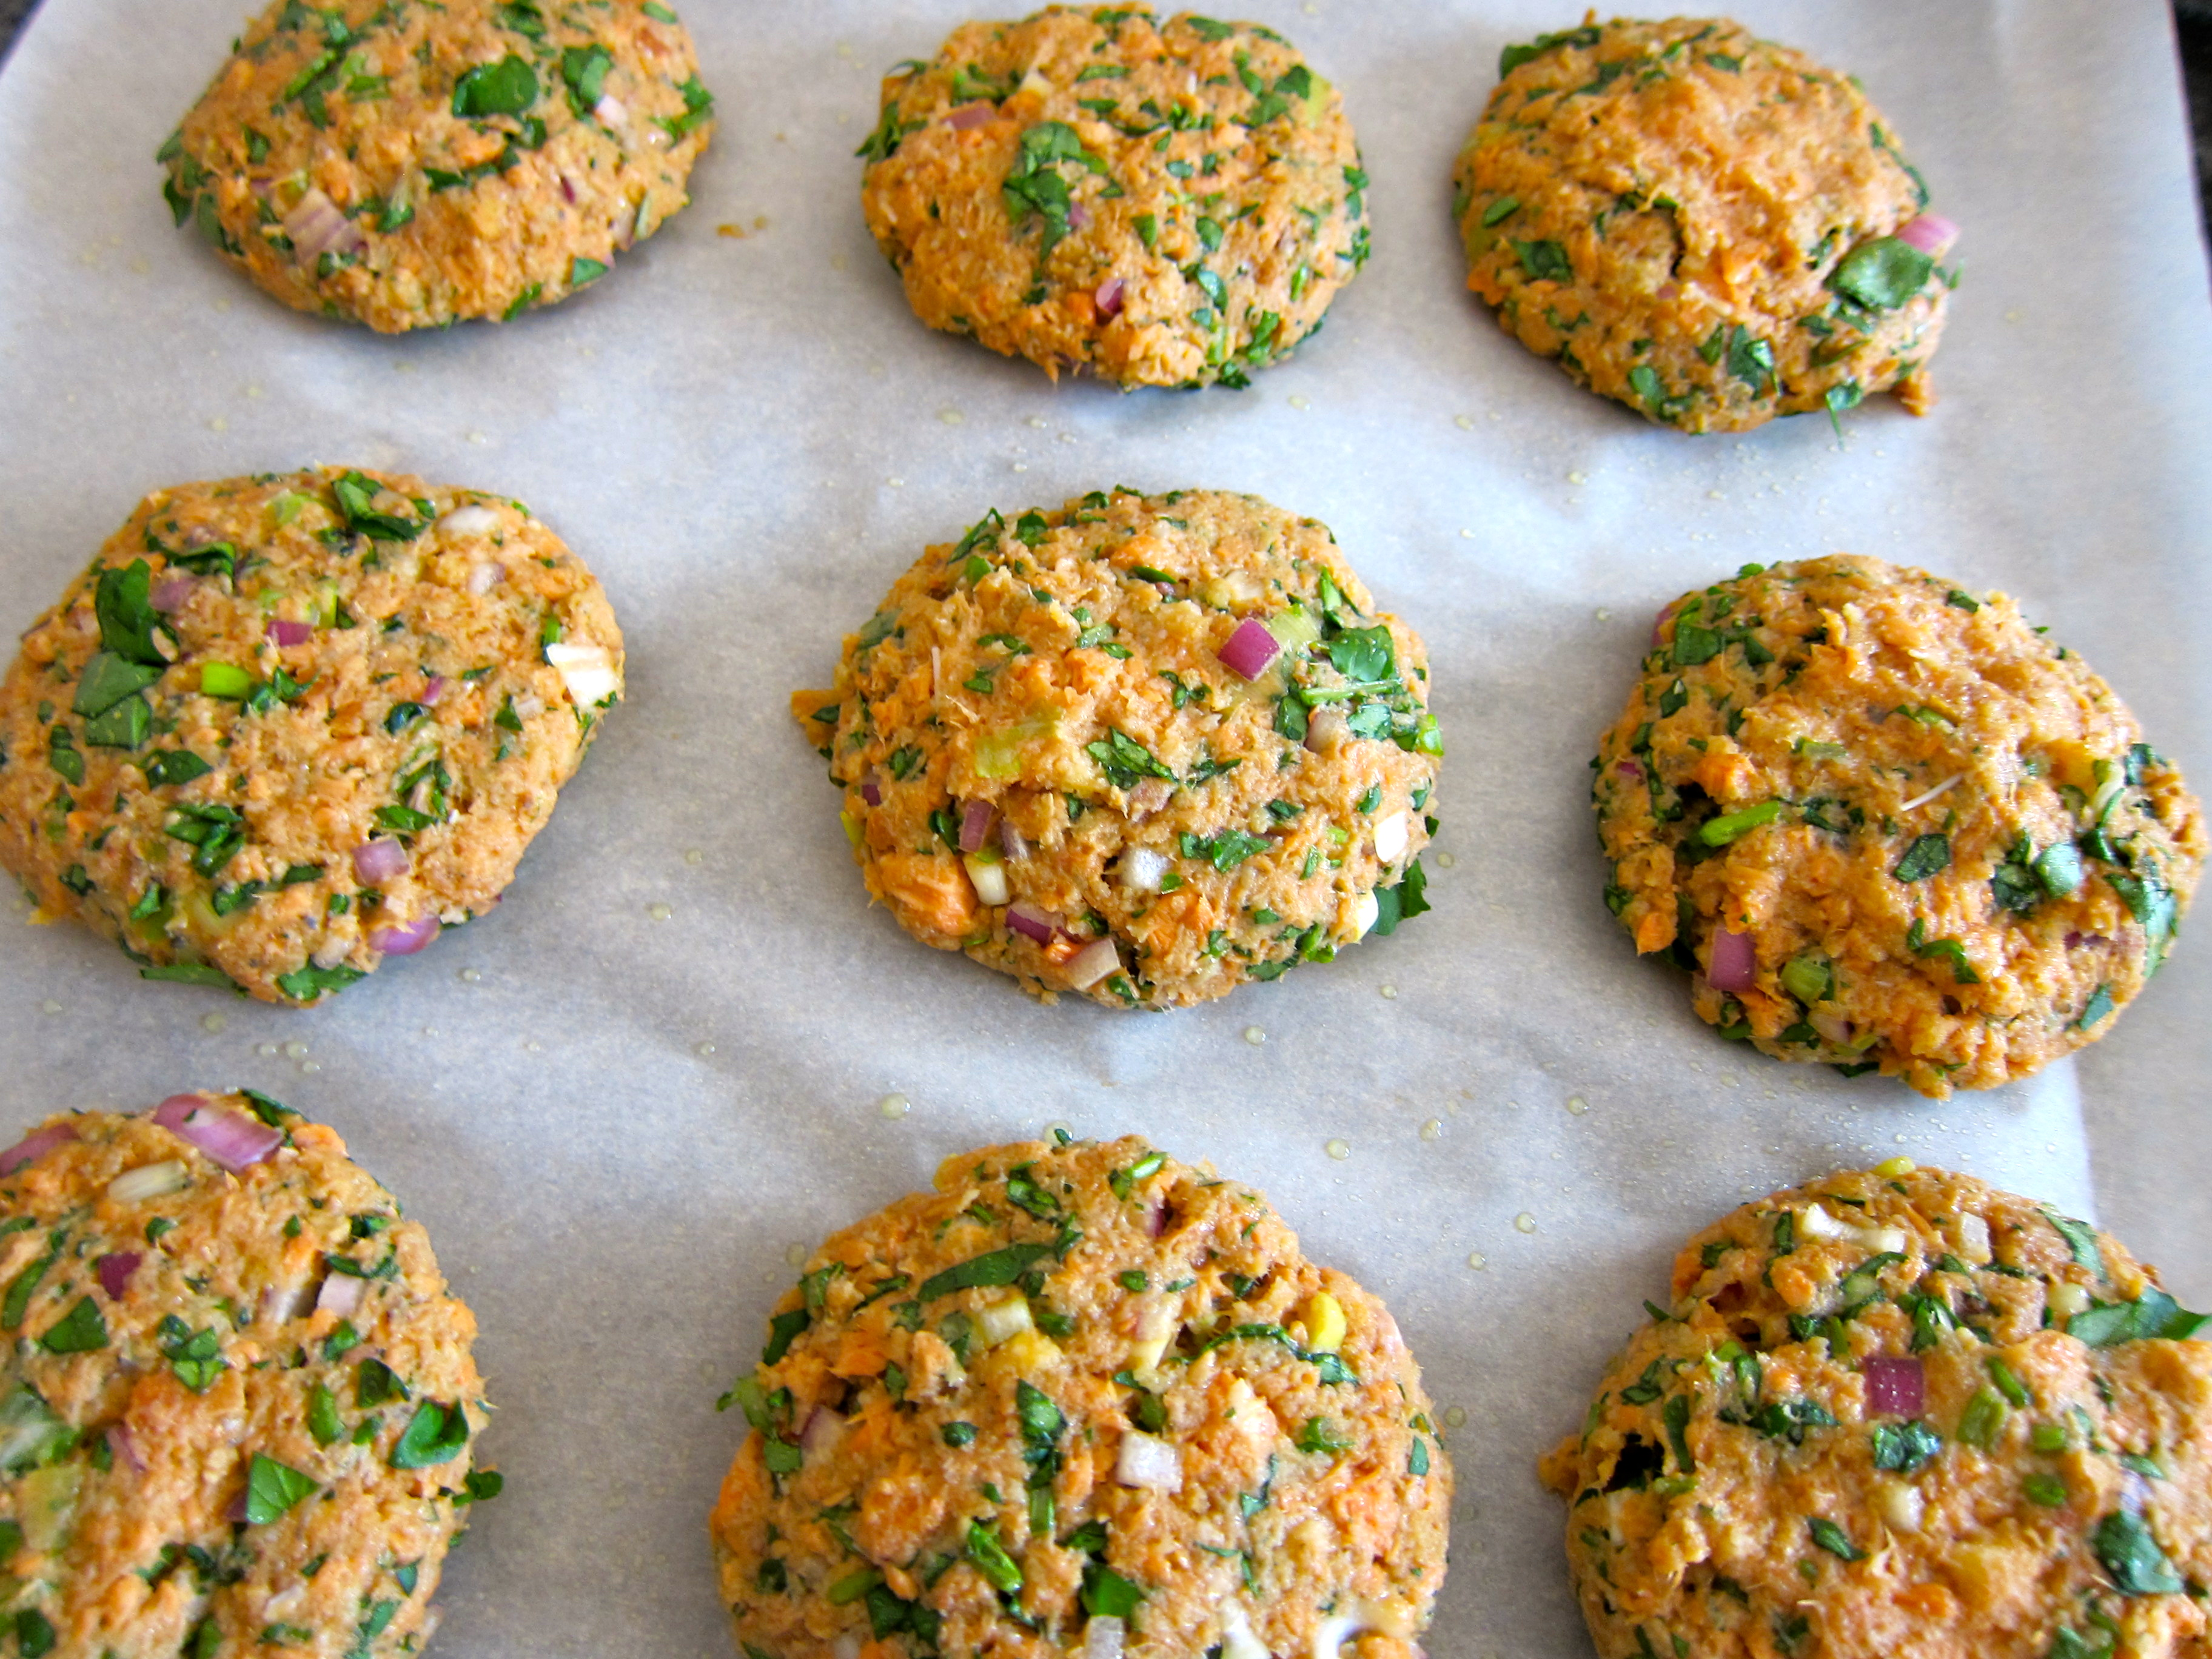 how to make salmon patties from canned salmon with crackers